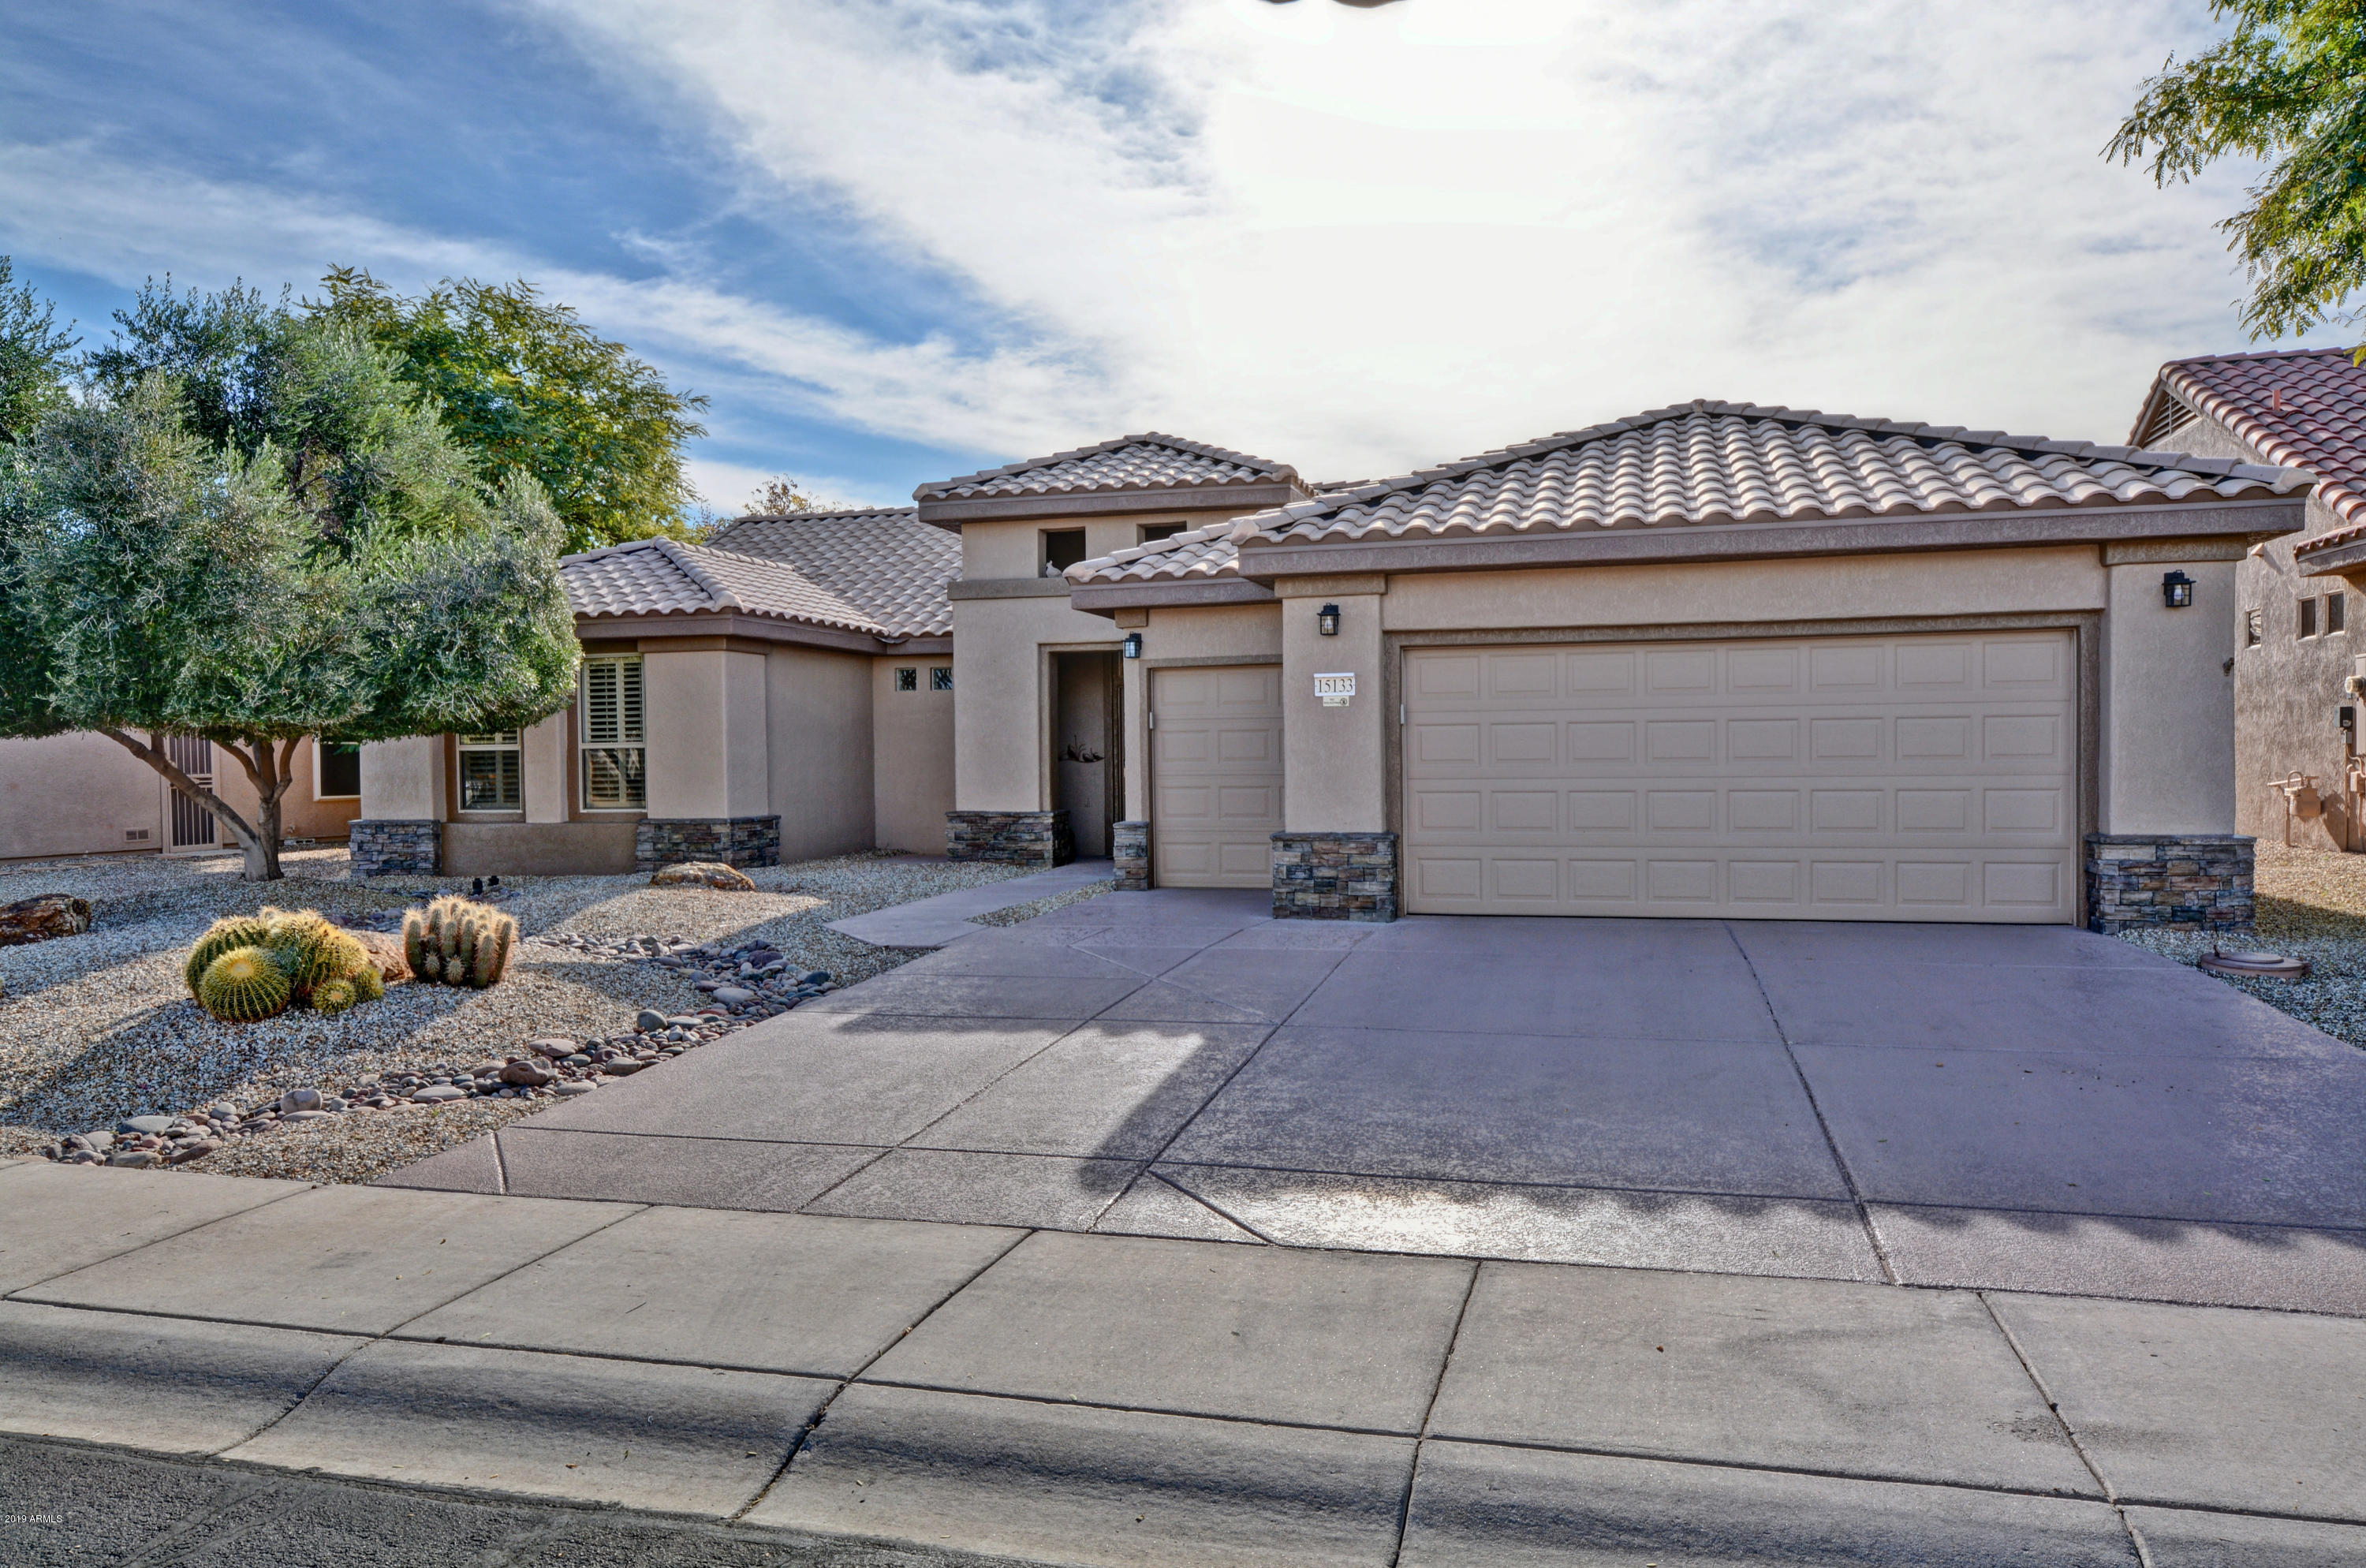 MLS 5871114 15133 W WILDFIRE Drive, Surprise, AZ 85374 Surprise AZ Adult Community